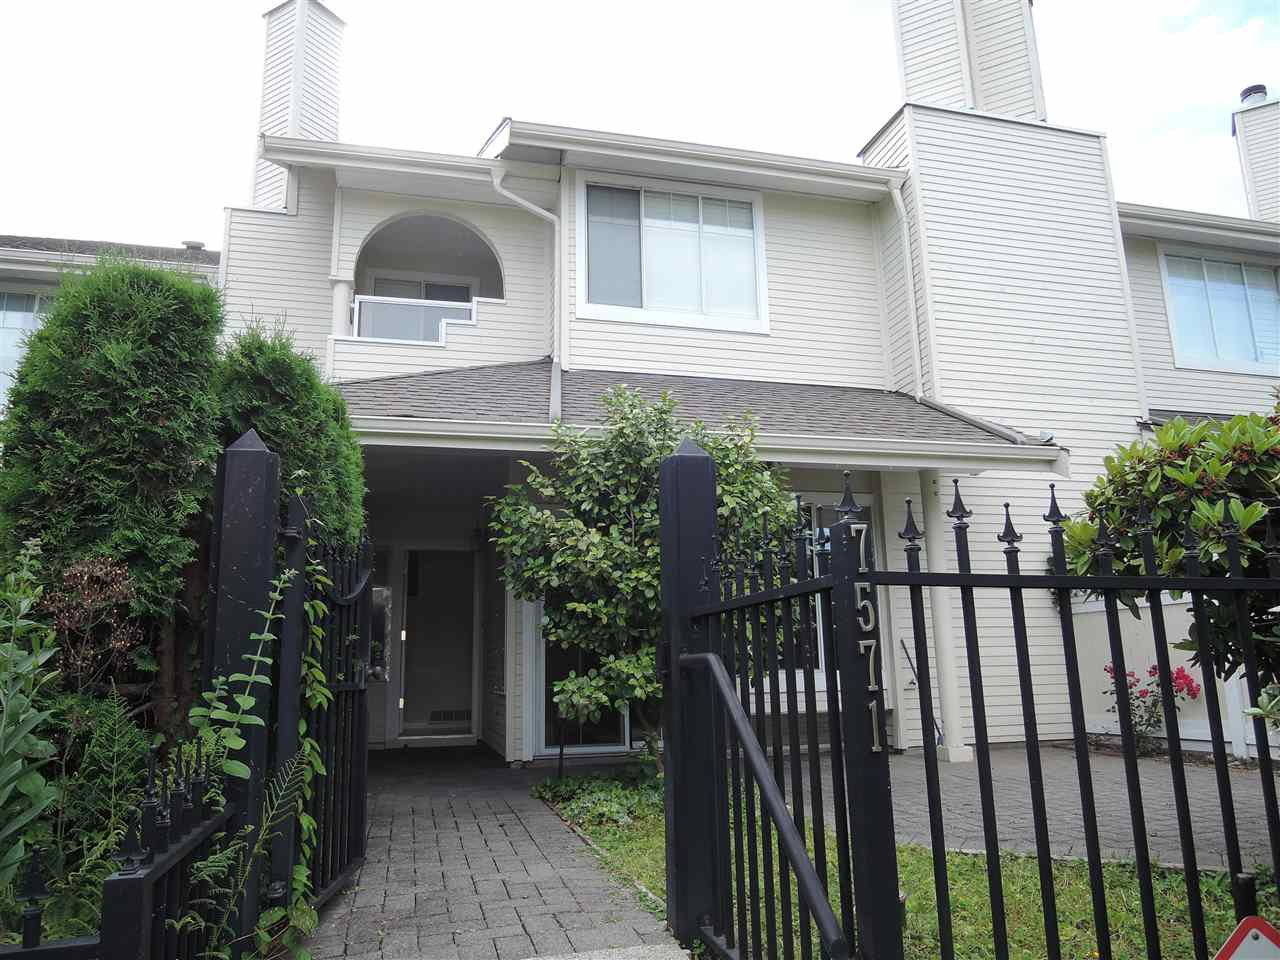 """Main Photo: 7571 MANITOBA Street in Vancouver: Marpole Townhouse for sale in """"SPRINGS AT LANGARA"""" (Vancouver West)  : MLS®# R2385591"""